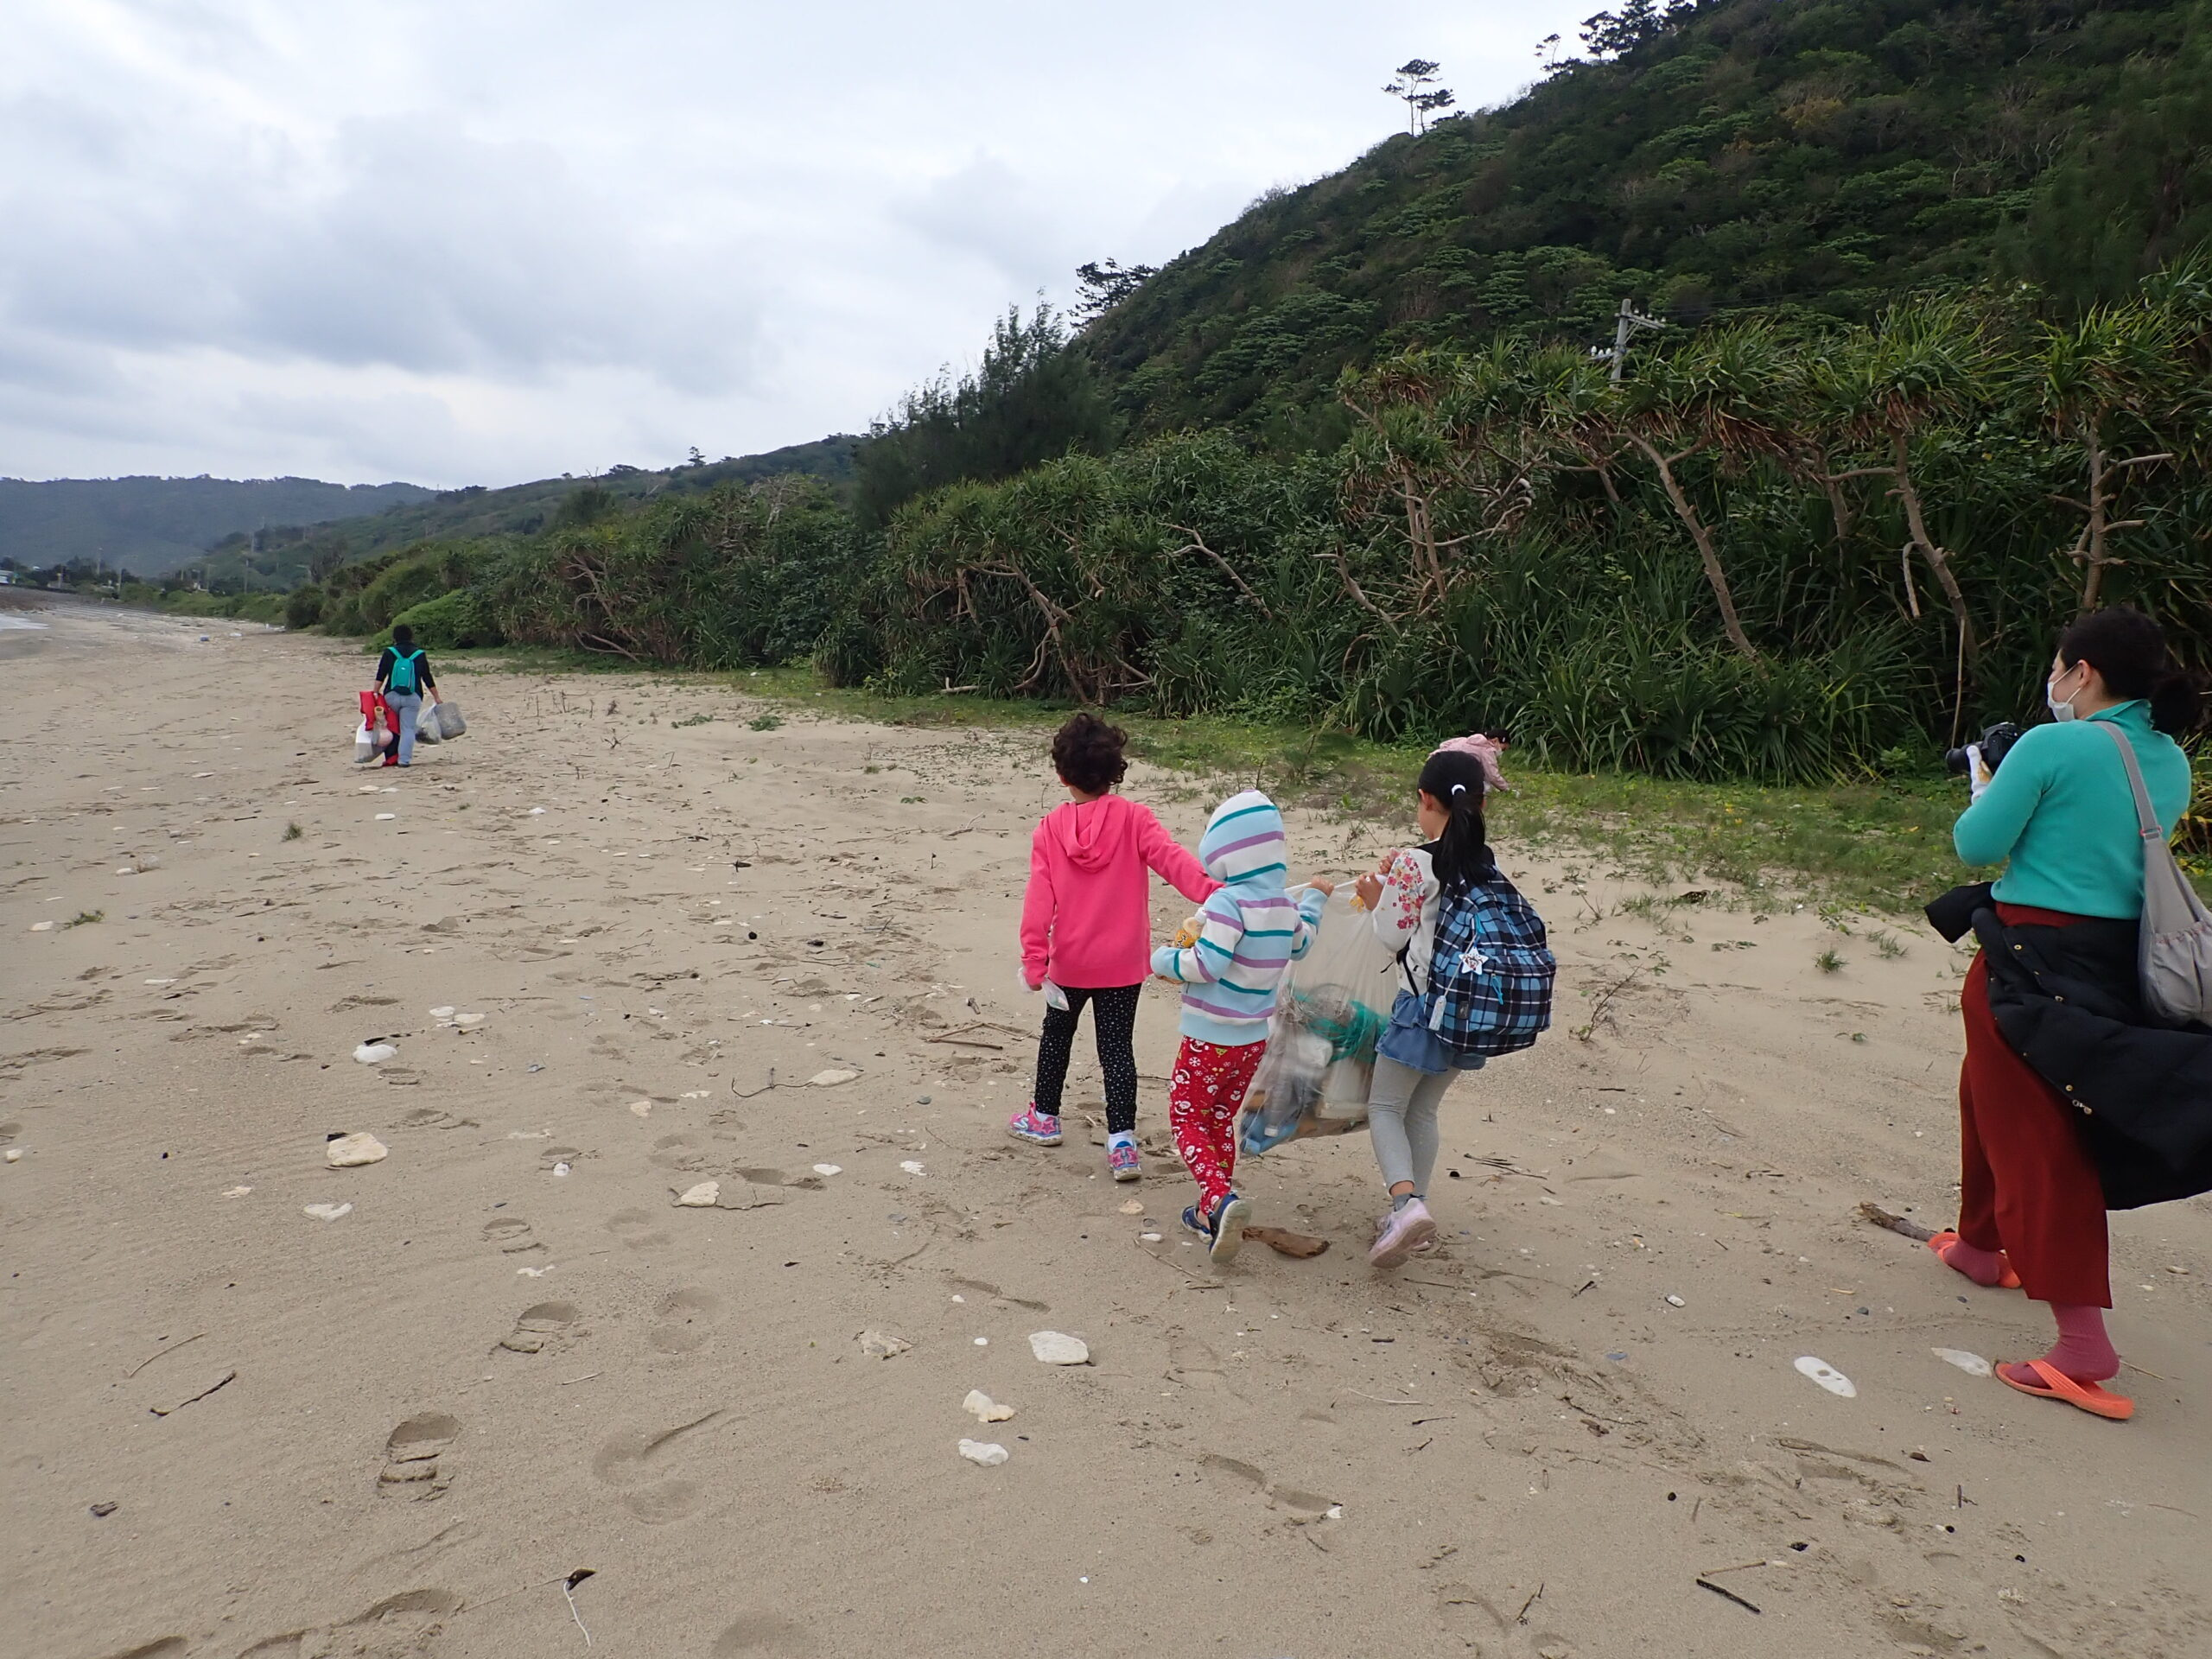 Beachcombing with a nature guide to think about the earth